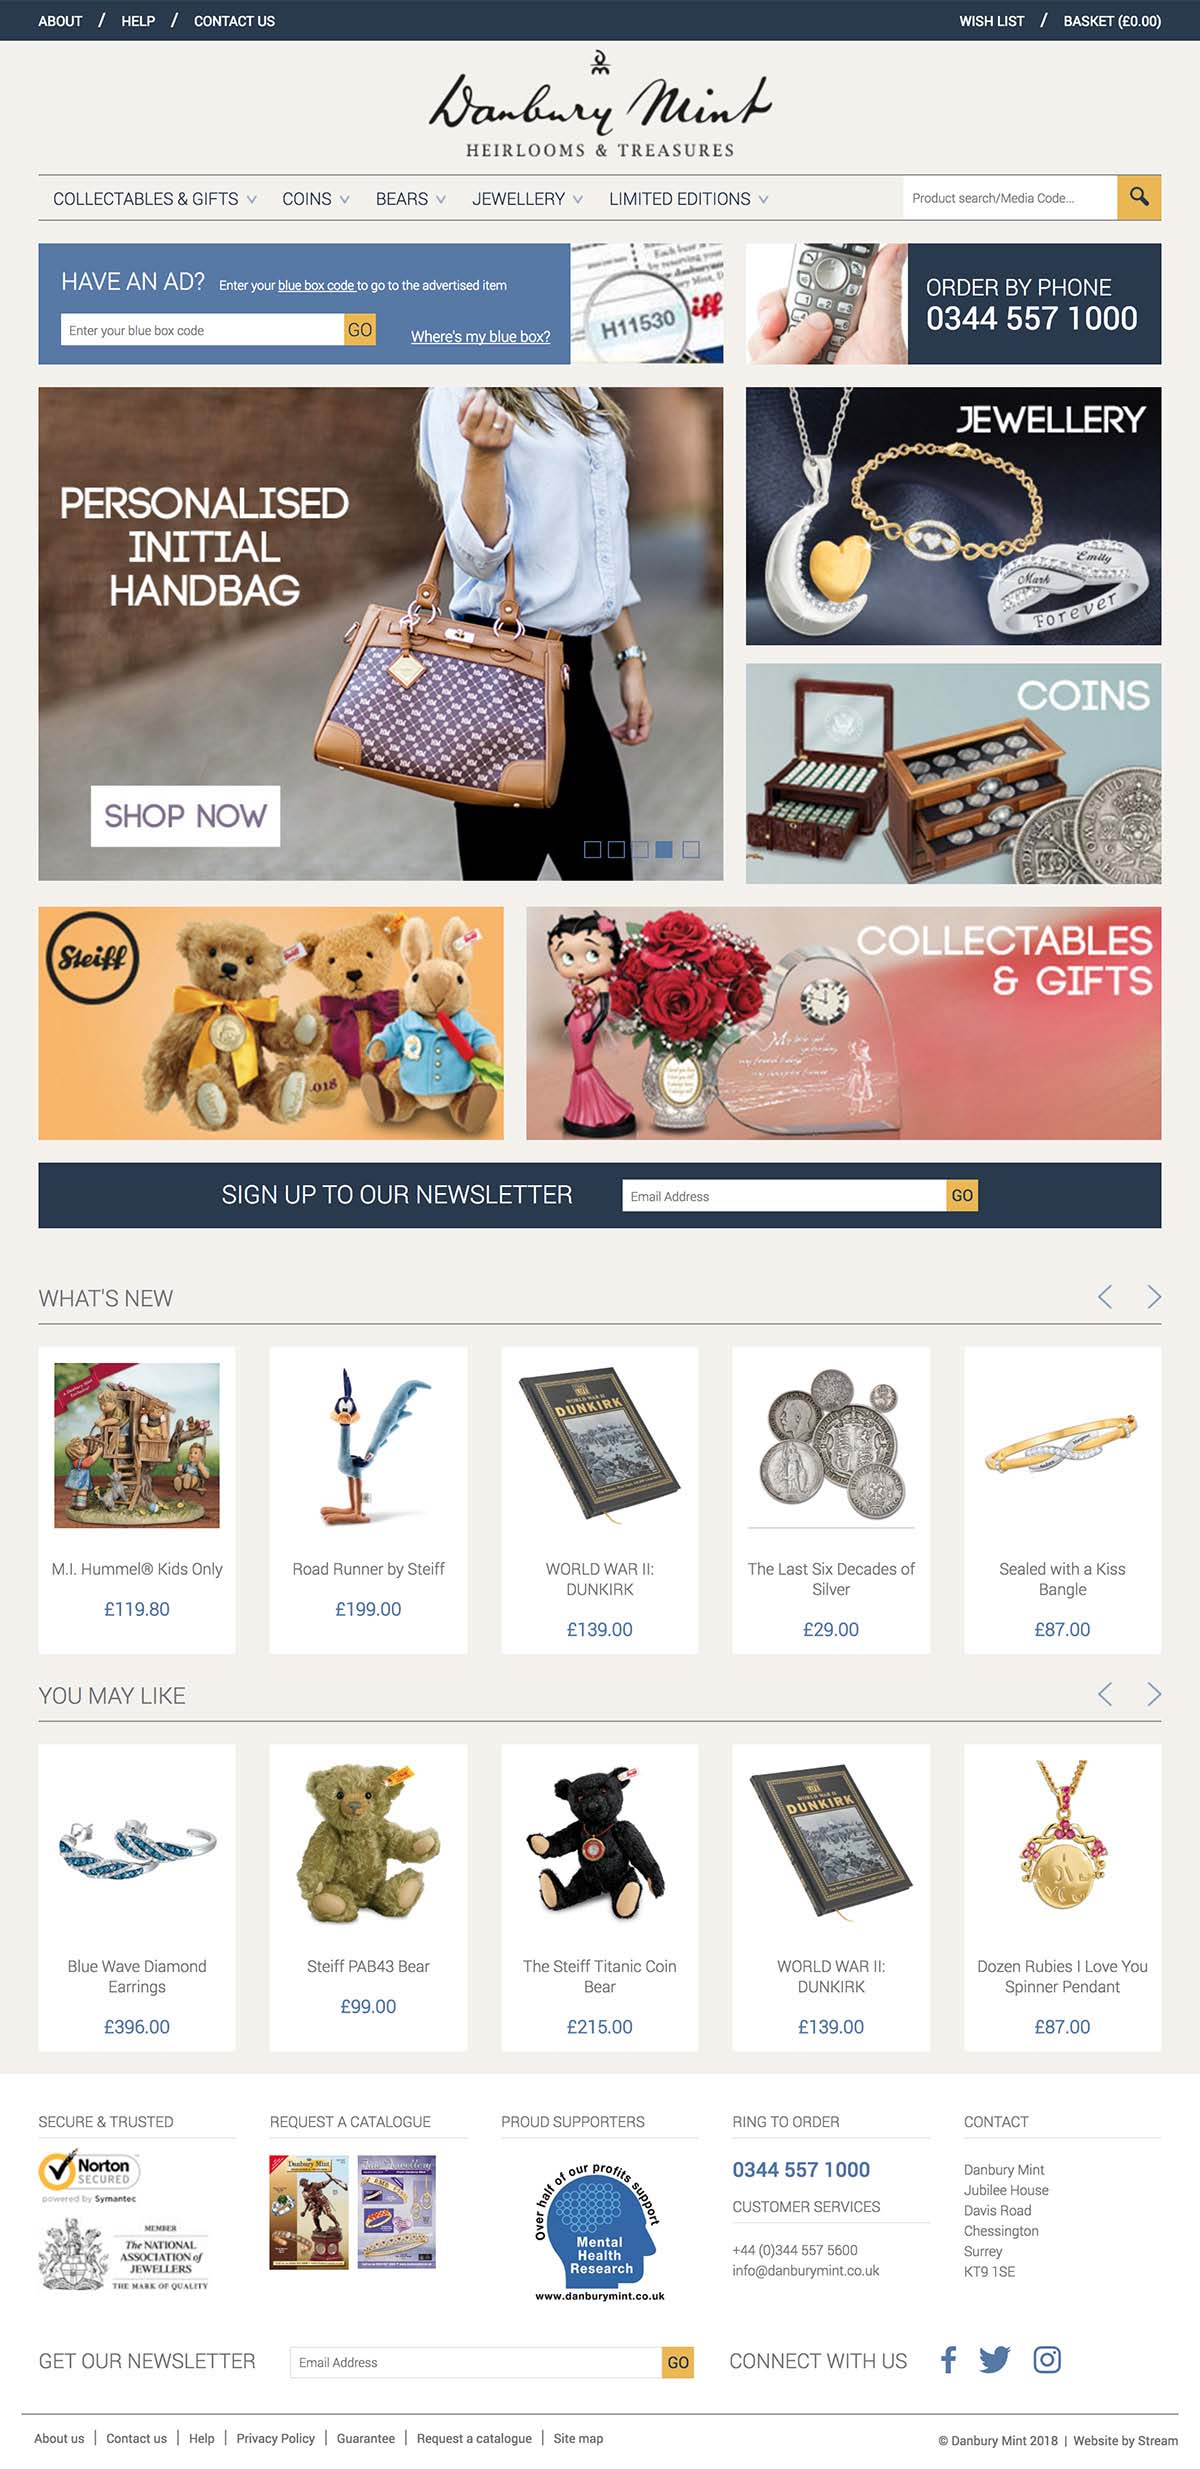 ecommerce website homepage for Danbury Mint